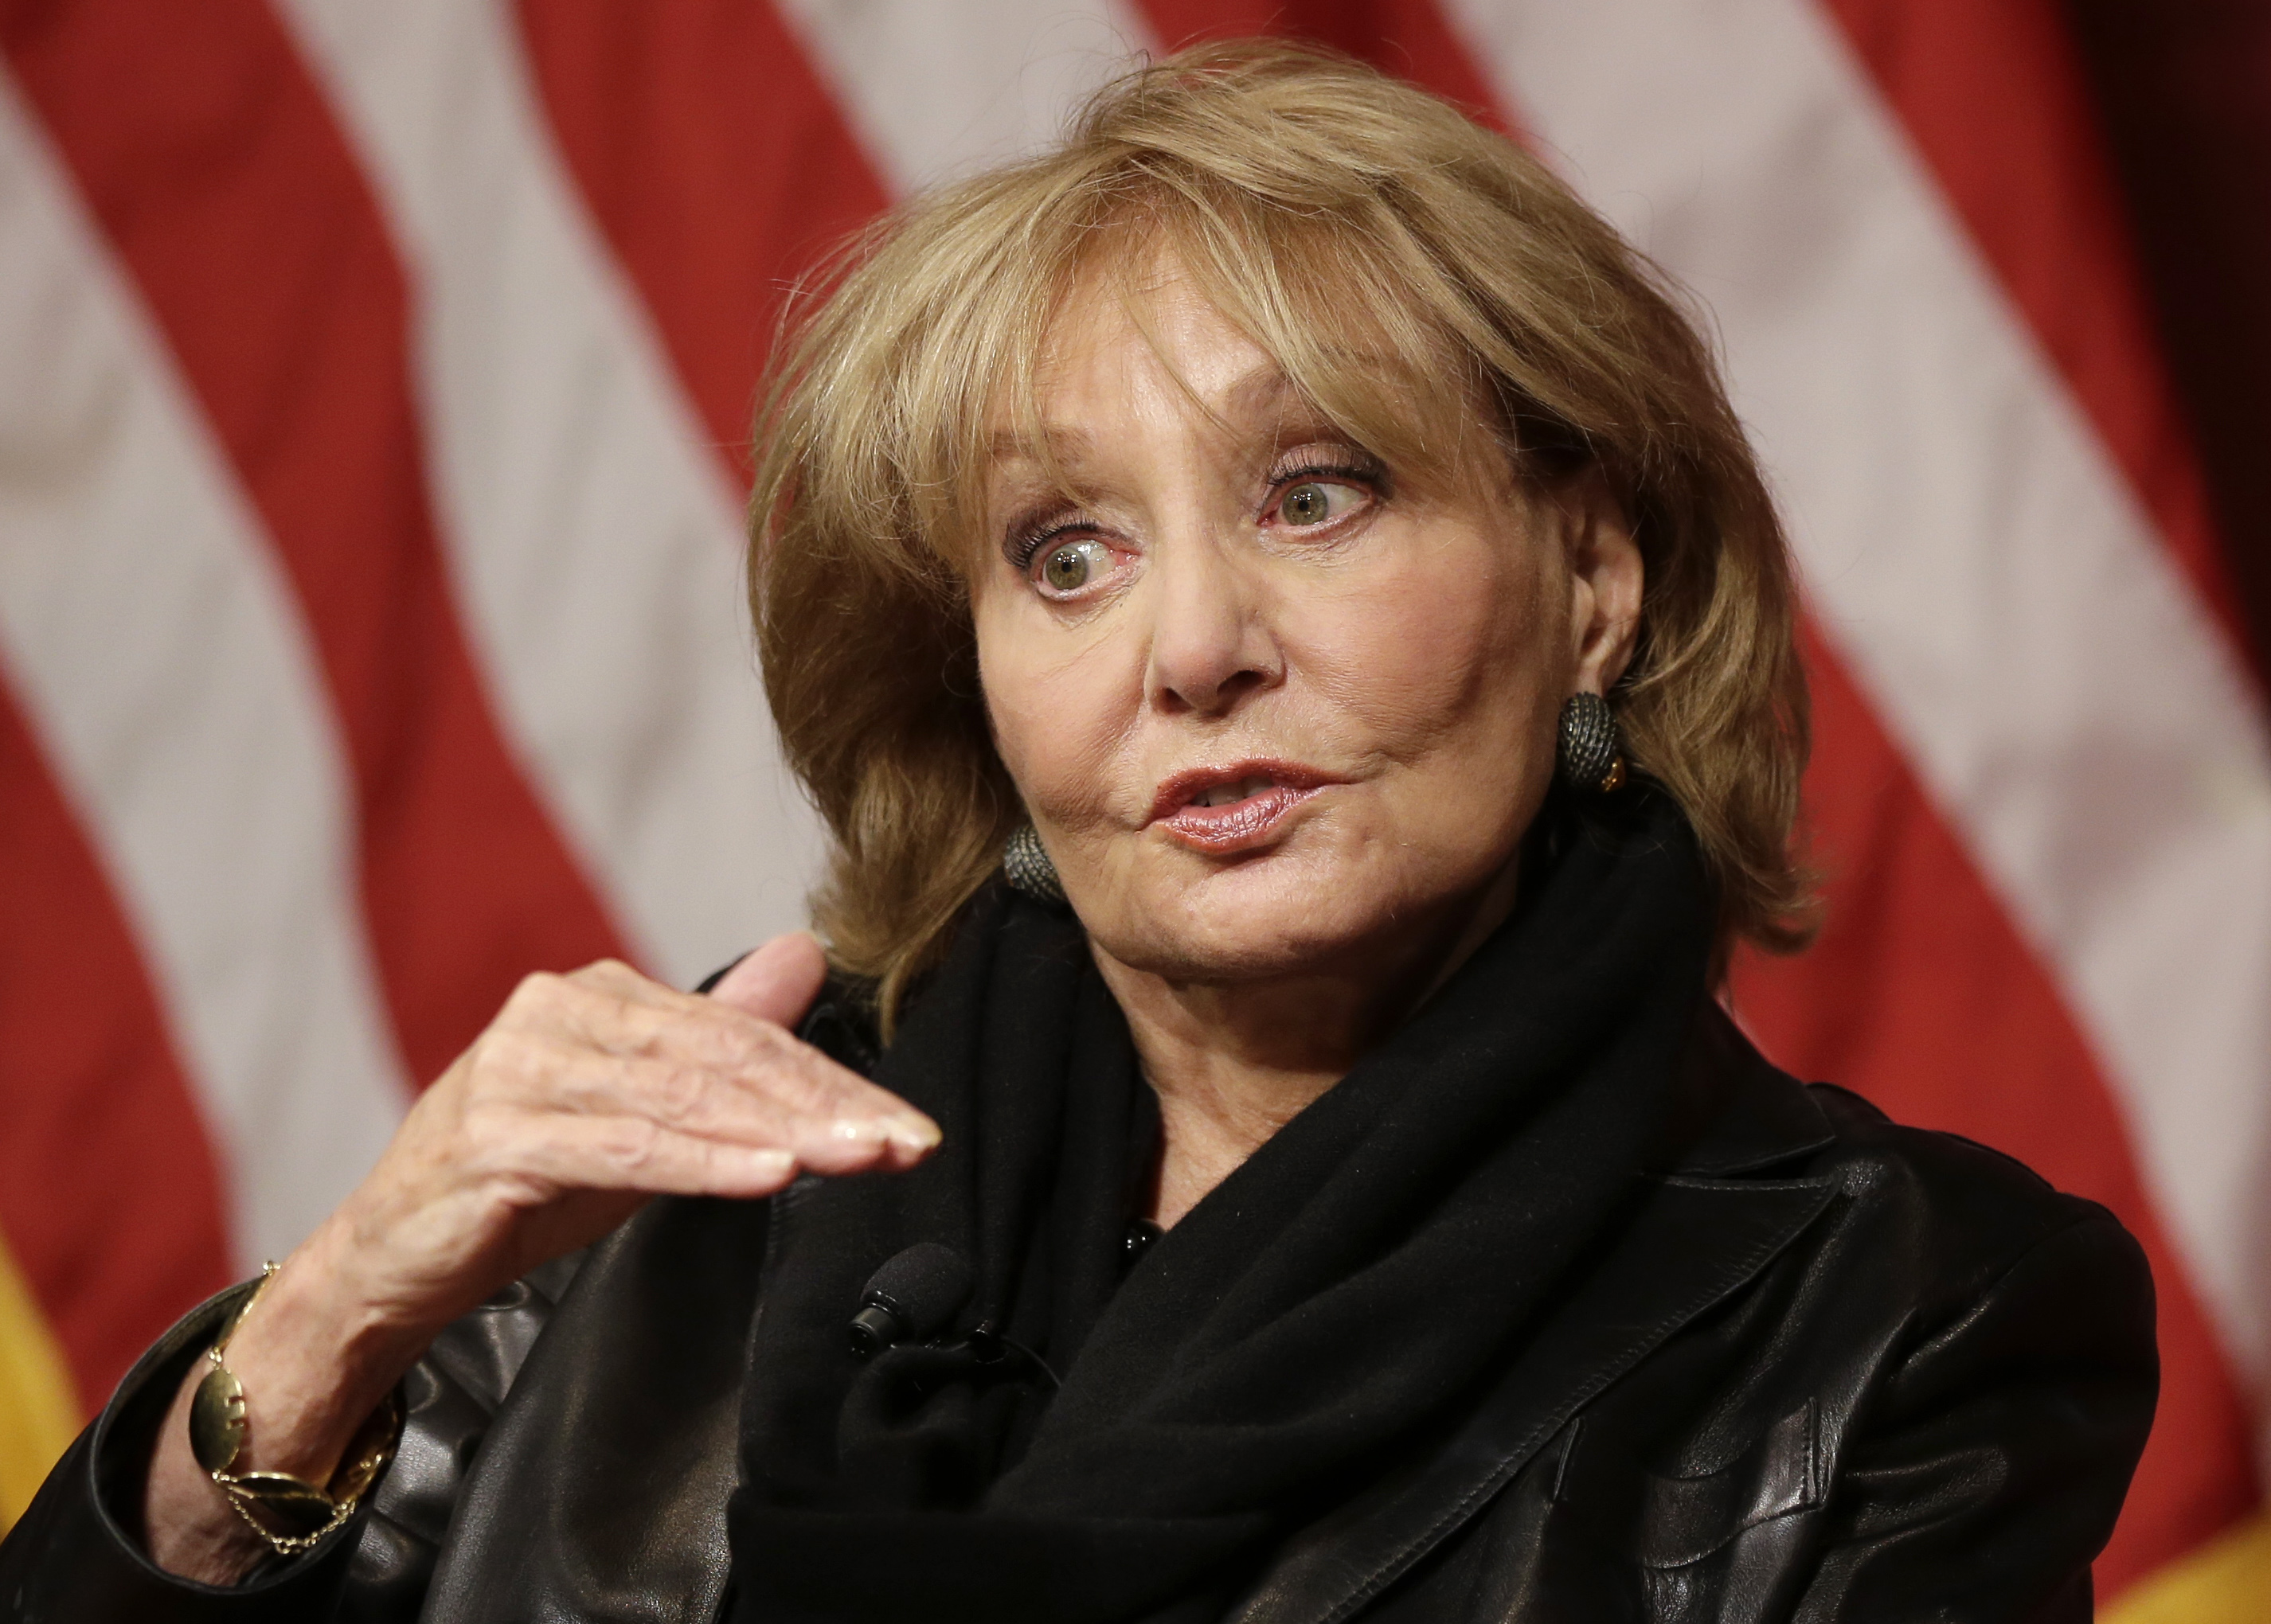 Barbara Walters making series for ID network